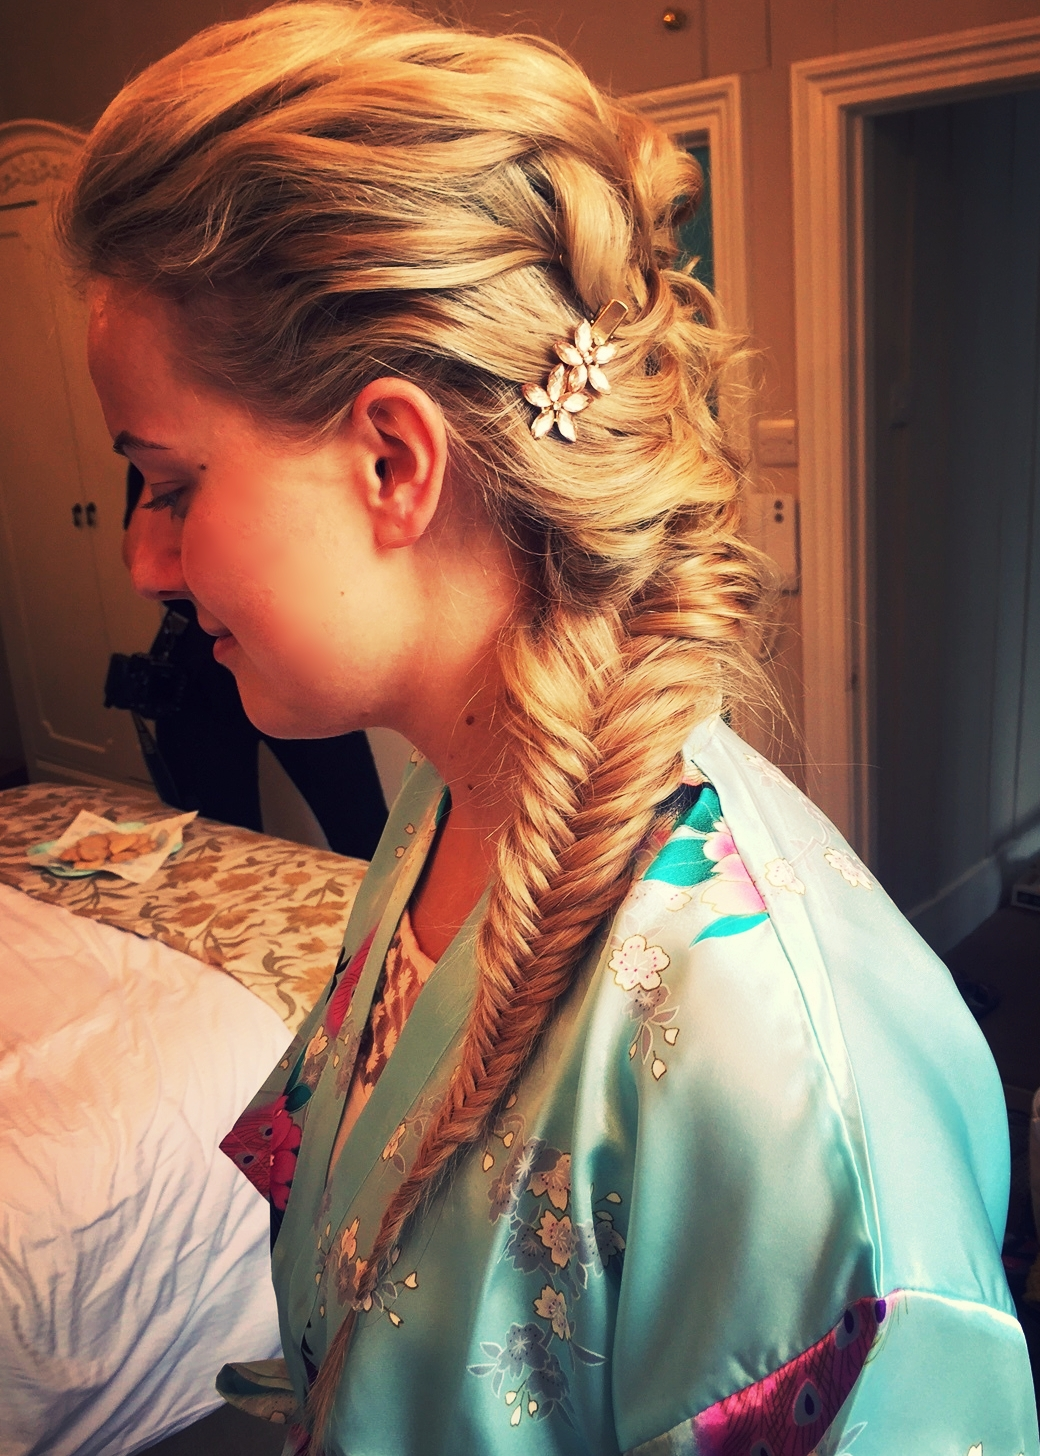 Fishtail - This one is incorporated with a tousled and textured style.